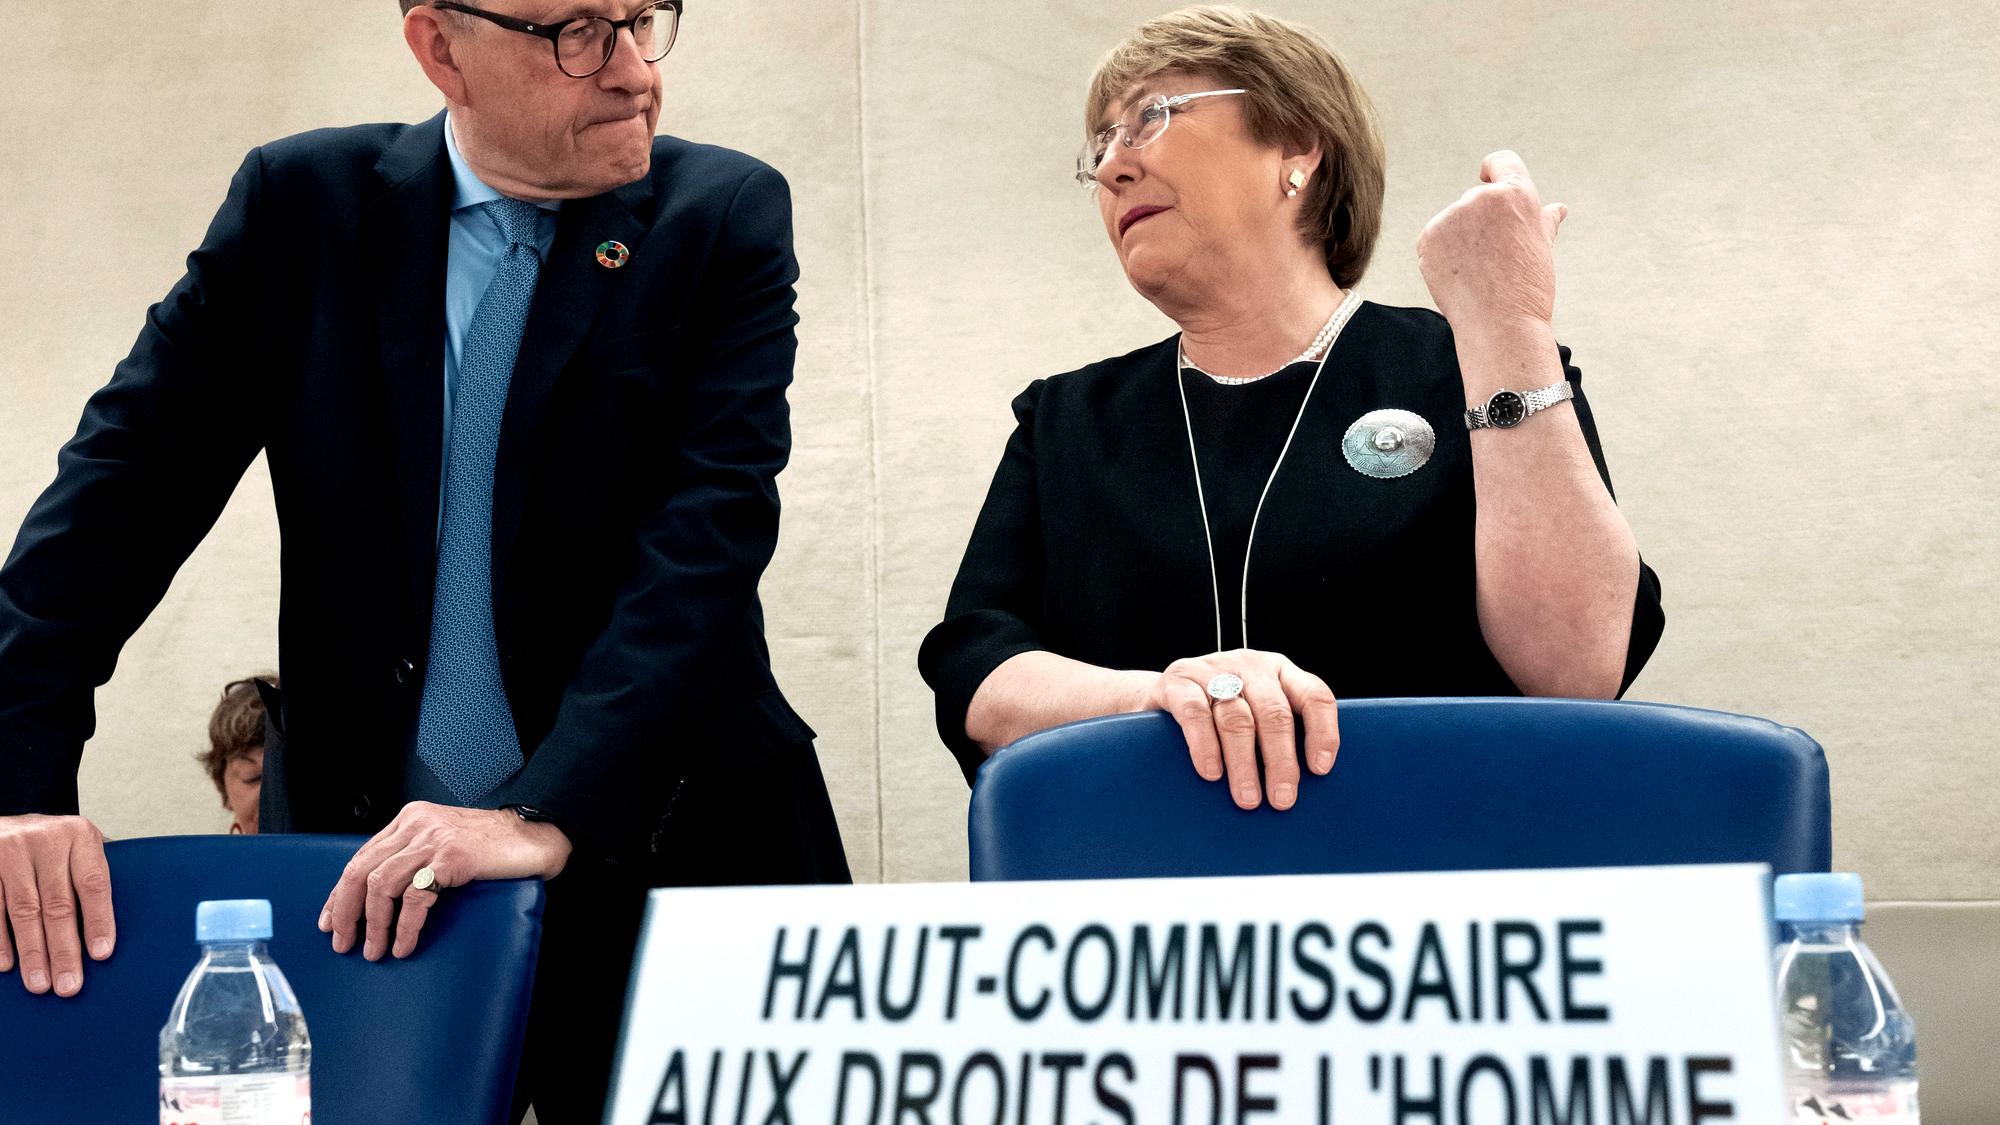 Michelle Bachelet speaking with Michael Møller at a head table in a conference hall.